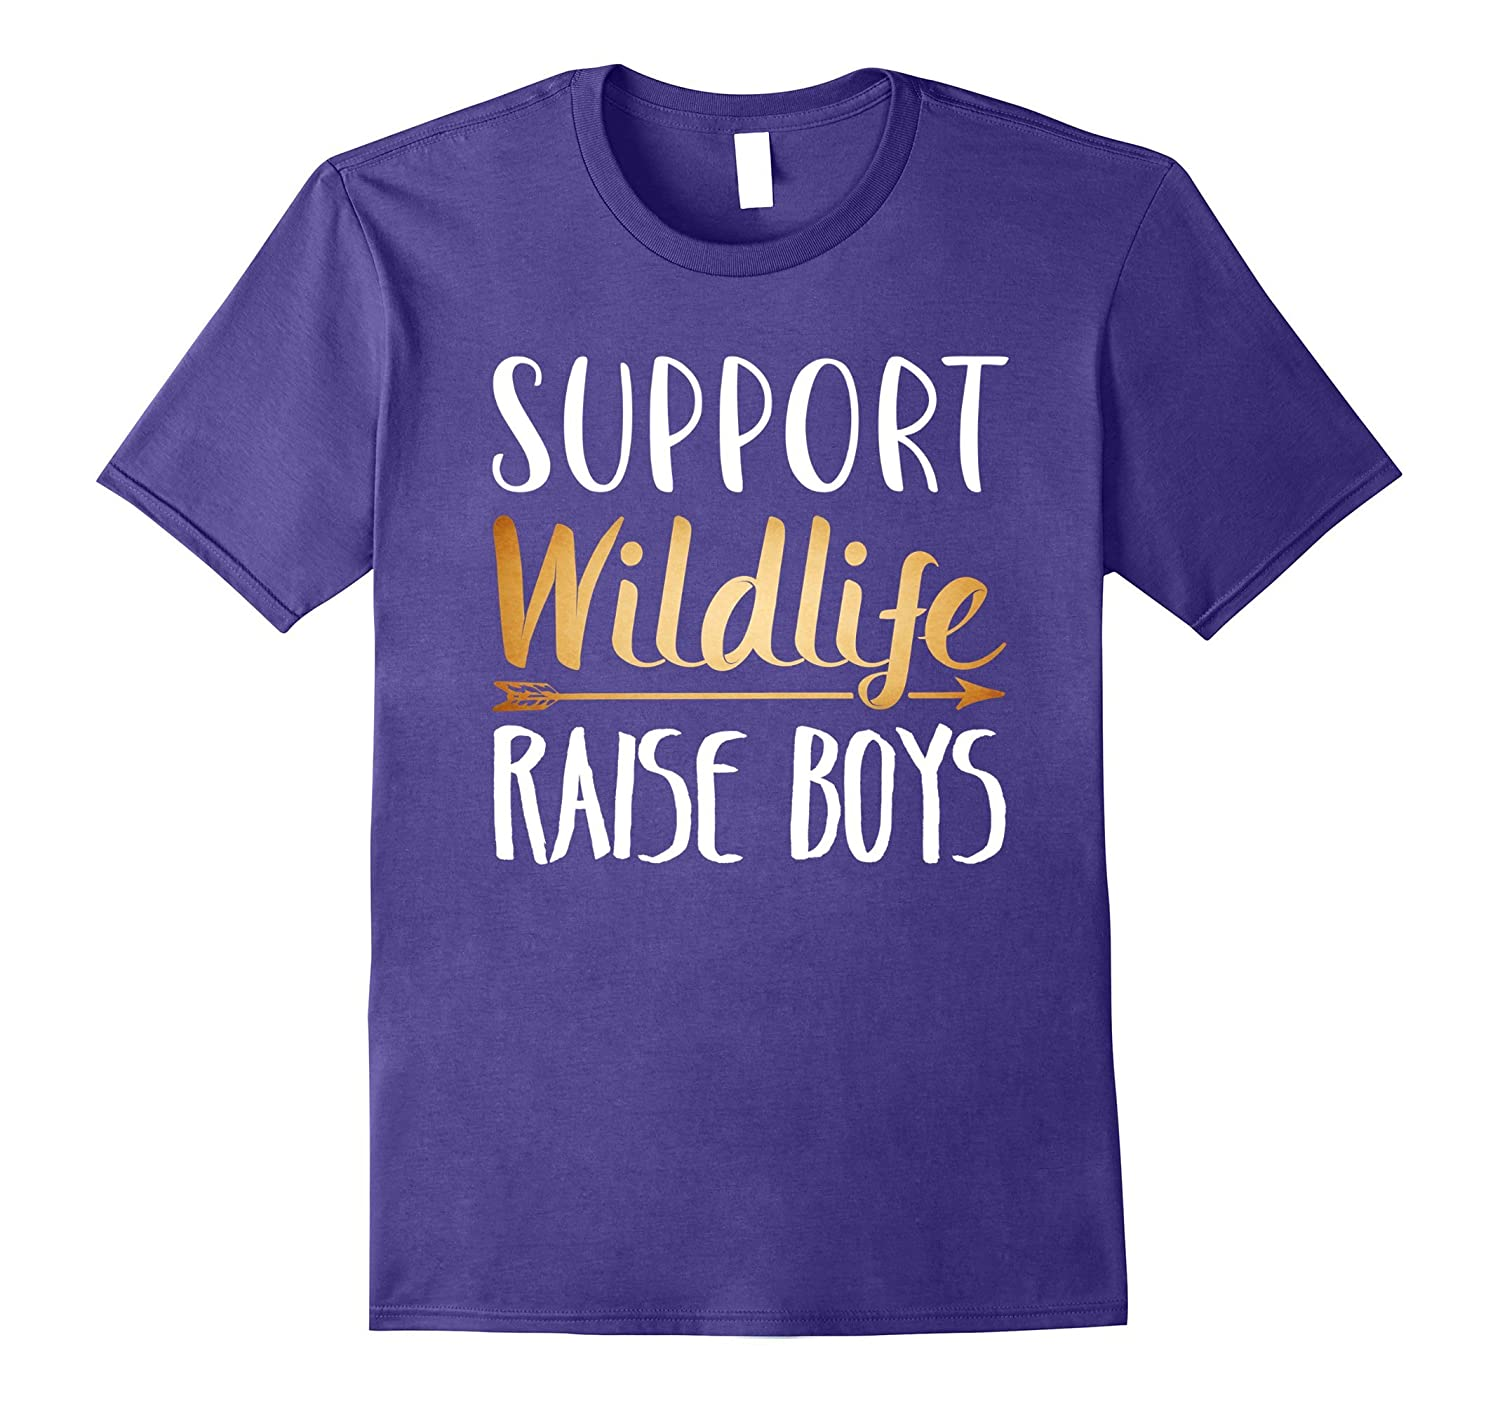 Support Wildlife Raise Boys - Funny Mothers Day T-Shirt-TD